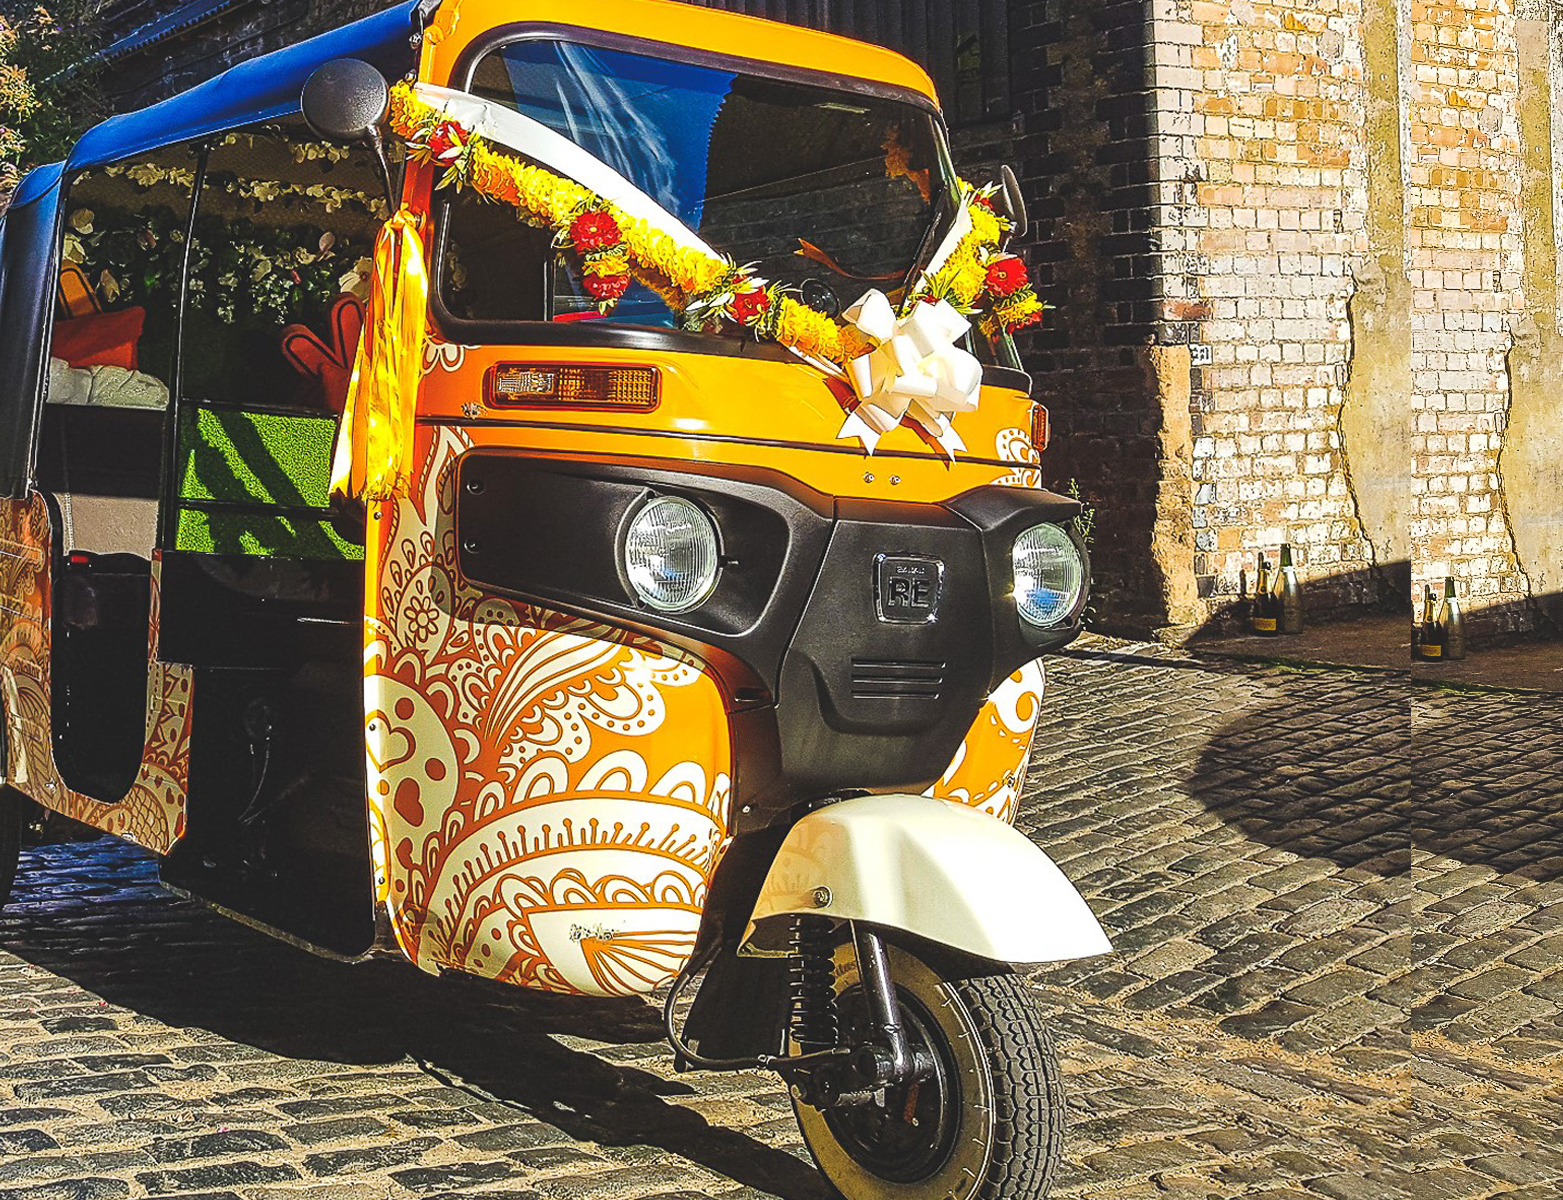 Hey there! - Did you say you want something different? Based in West Berkshire near Hungerford, we offer a funtastic range of services that will bring the unique to your event with our tuk tuk - nothing brings a smile like a tuk tuk!Choose from wedding transport, photo booth hire, head turning brand engagement or our fabulous chai station. Good vibes guaranteed!We love to travel and so does our tuk tuk, so we provide our services across the whole of Berkshire, Oxfordshire, Buckinghamshire, Surrey, Hampshire, Gloucestershire, Wiltshire, Somerset and London too!Learn More